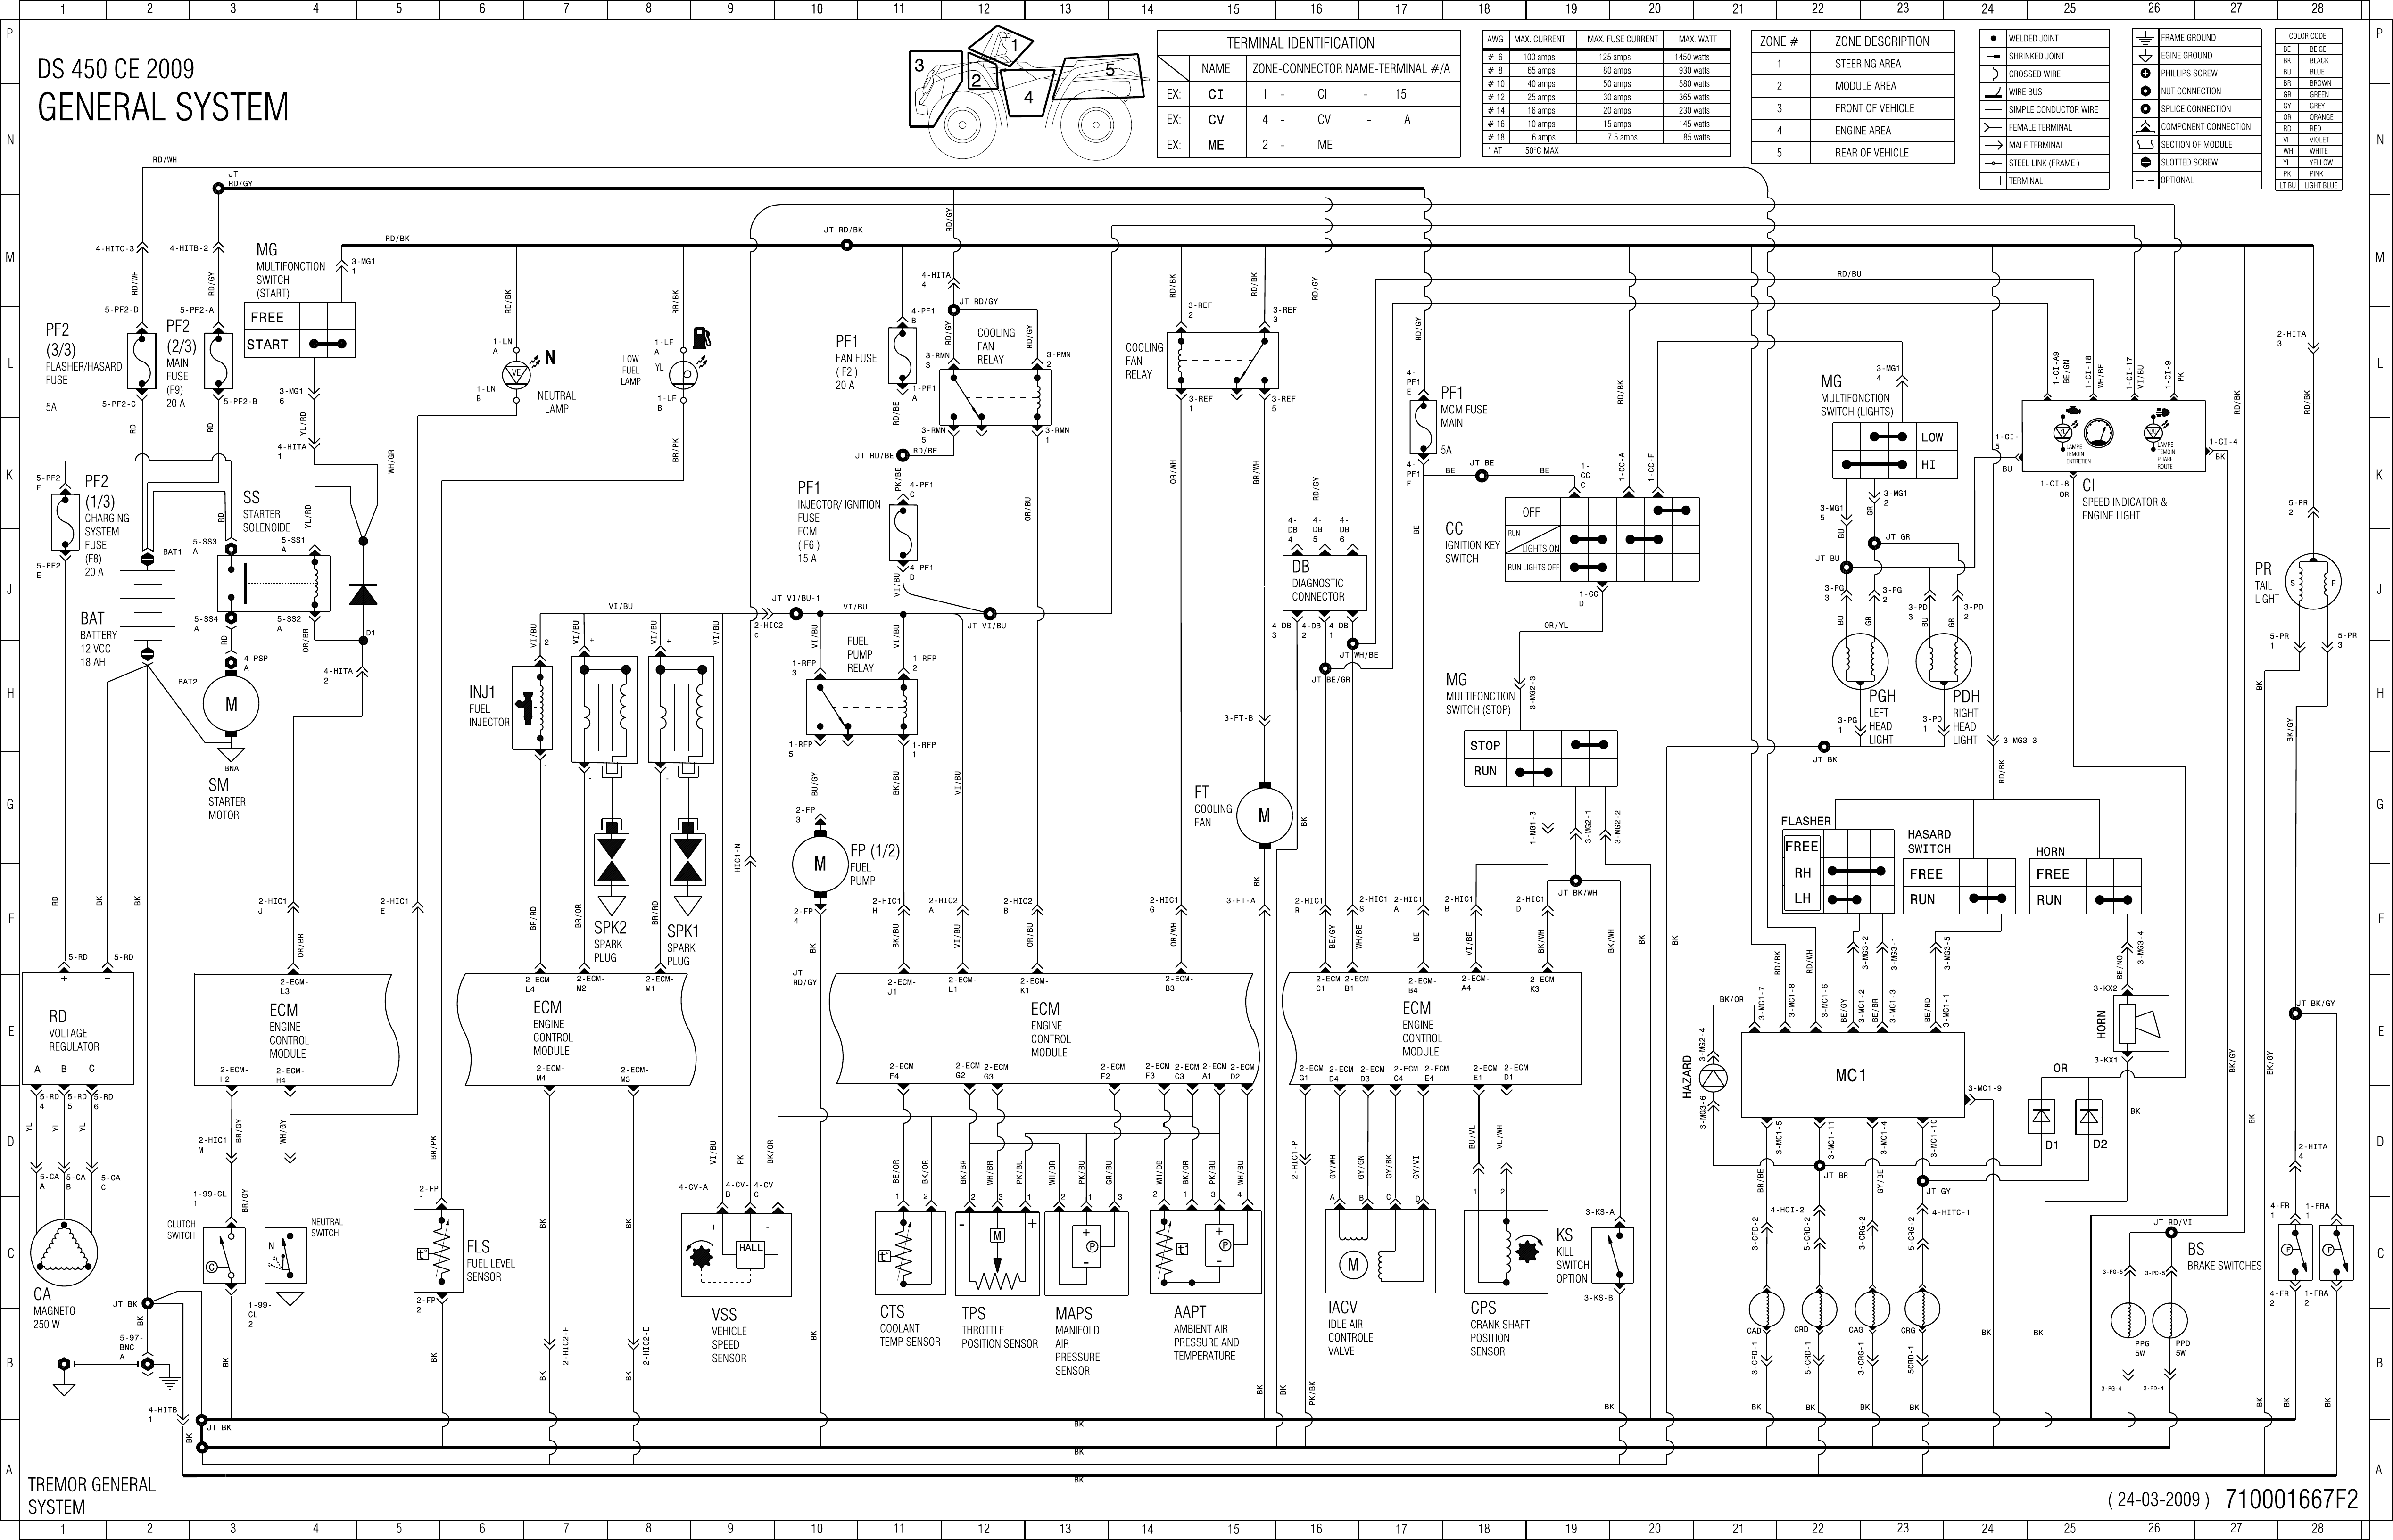 ... ds 450 wiring diagram trusted wiring diagram Arctic Cat 400 Wiring  Diagram can am_2009_ds_450_ce_wiring_diagram am 2009